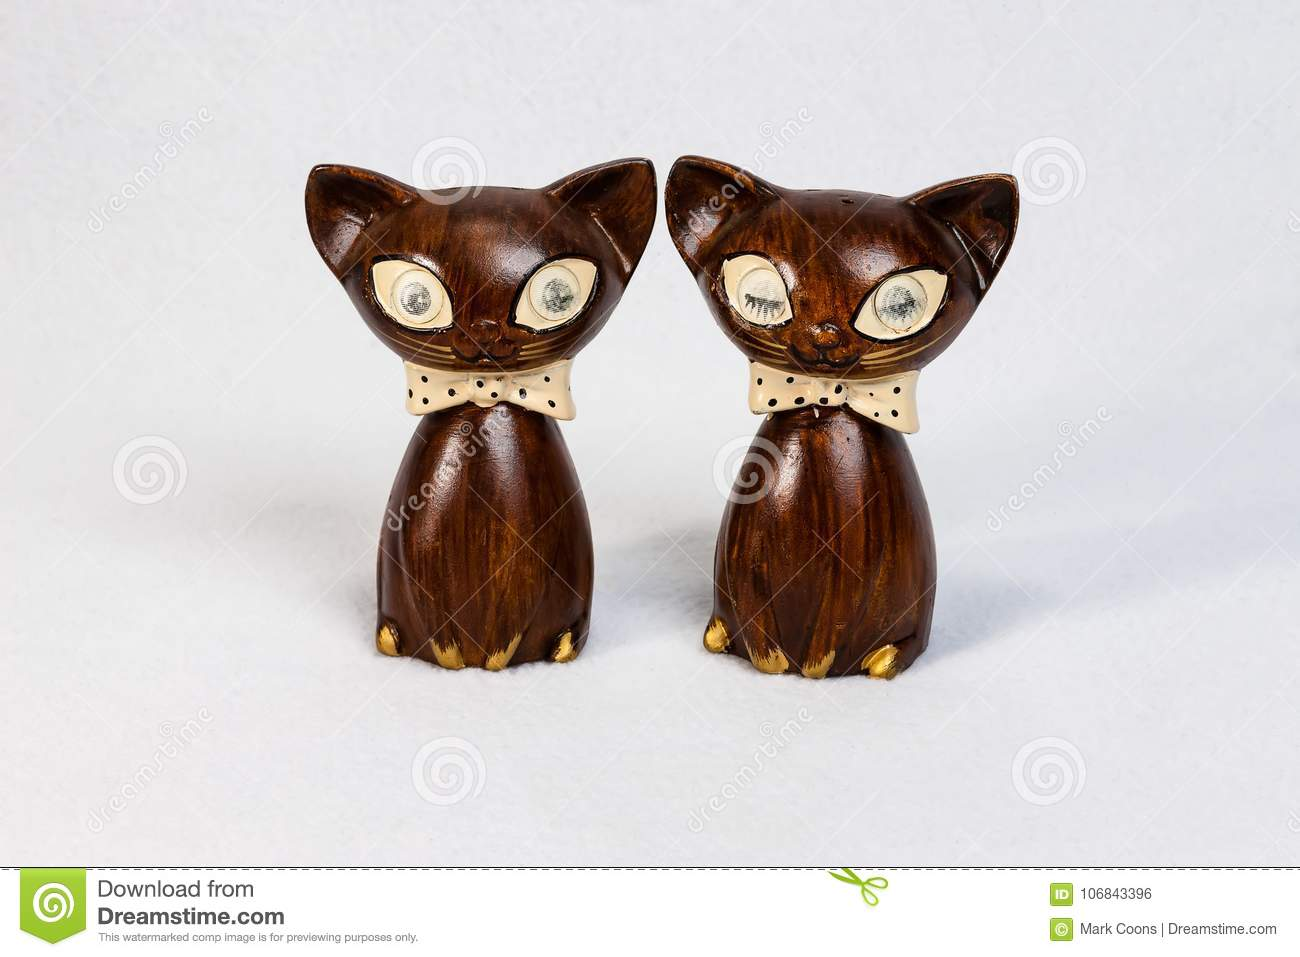 Medium Sized Wooden Cat Salt And Pepper Shakers Stock Photo Image Of Pepper Table 106843396